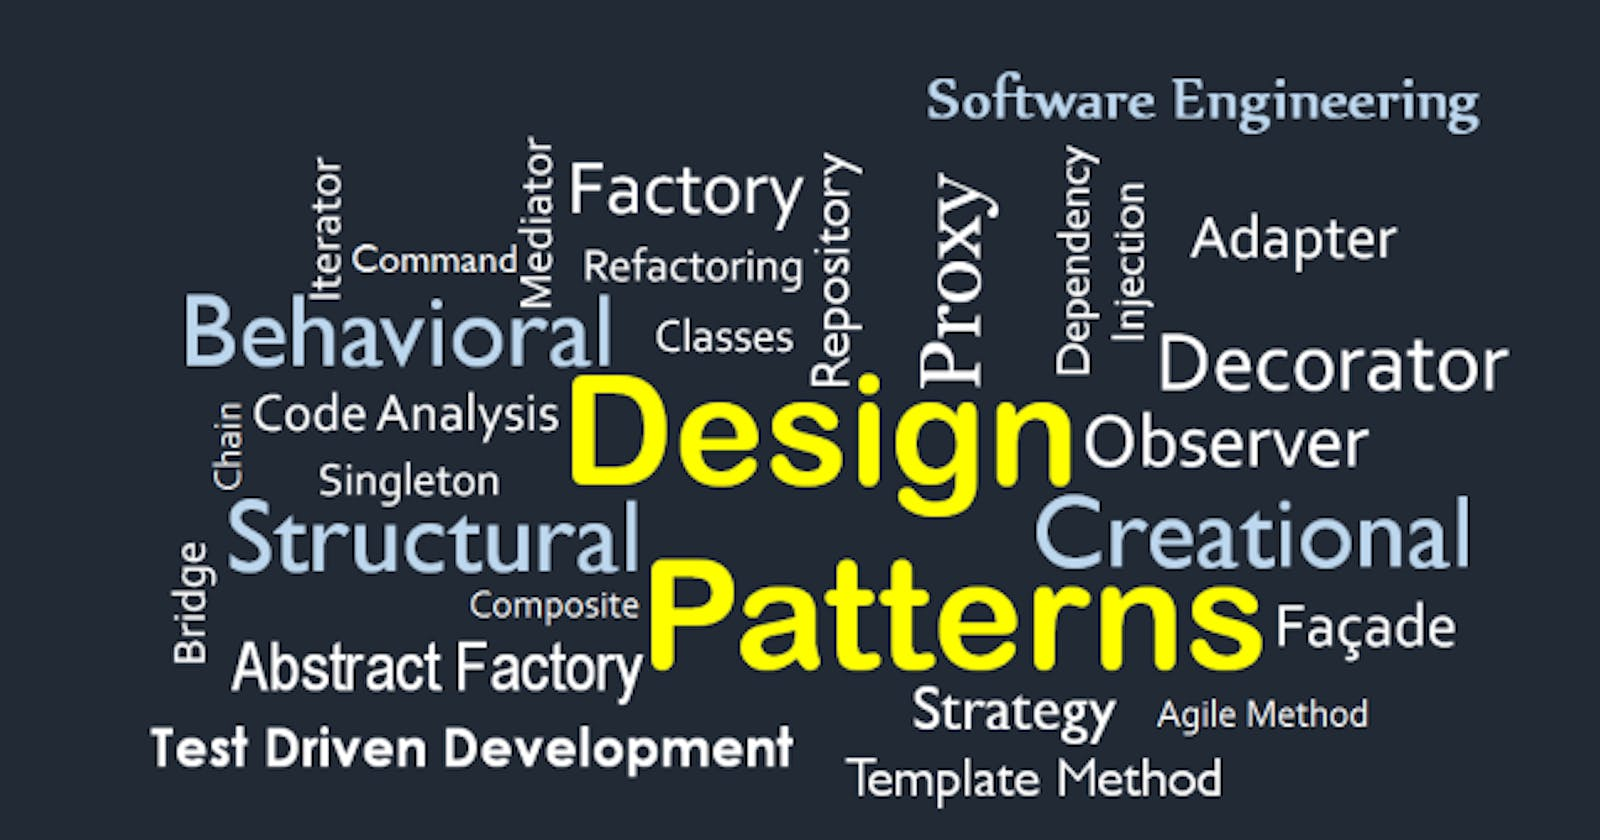 Design Patterns - The holy grail?